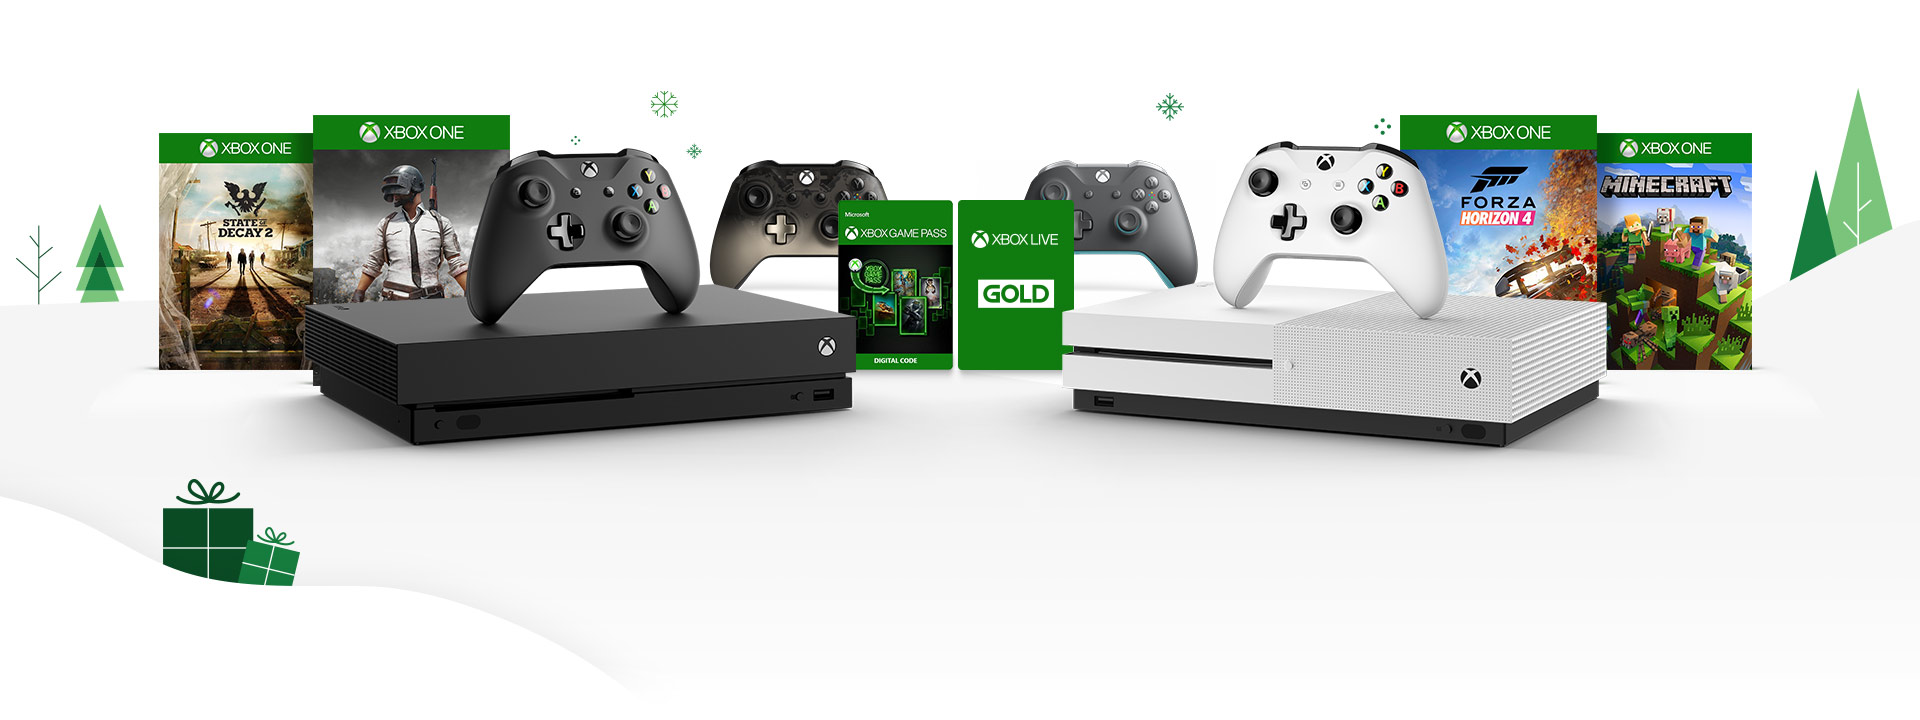 Front view of Xbox One X and Xbox One S, surrounded by State of Decay 2, PlayerUnknown Battleground, Forza Horizon 4 and Minecraft box shots and Xbox Wireless controllers